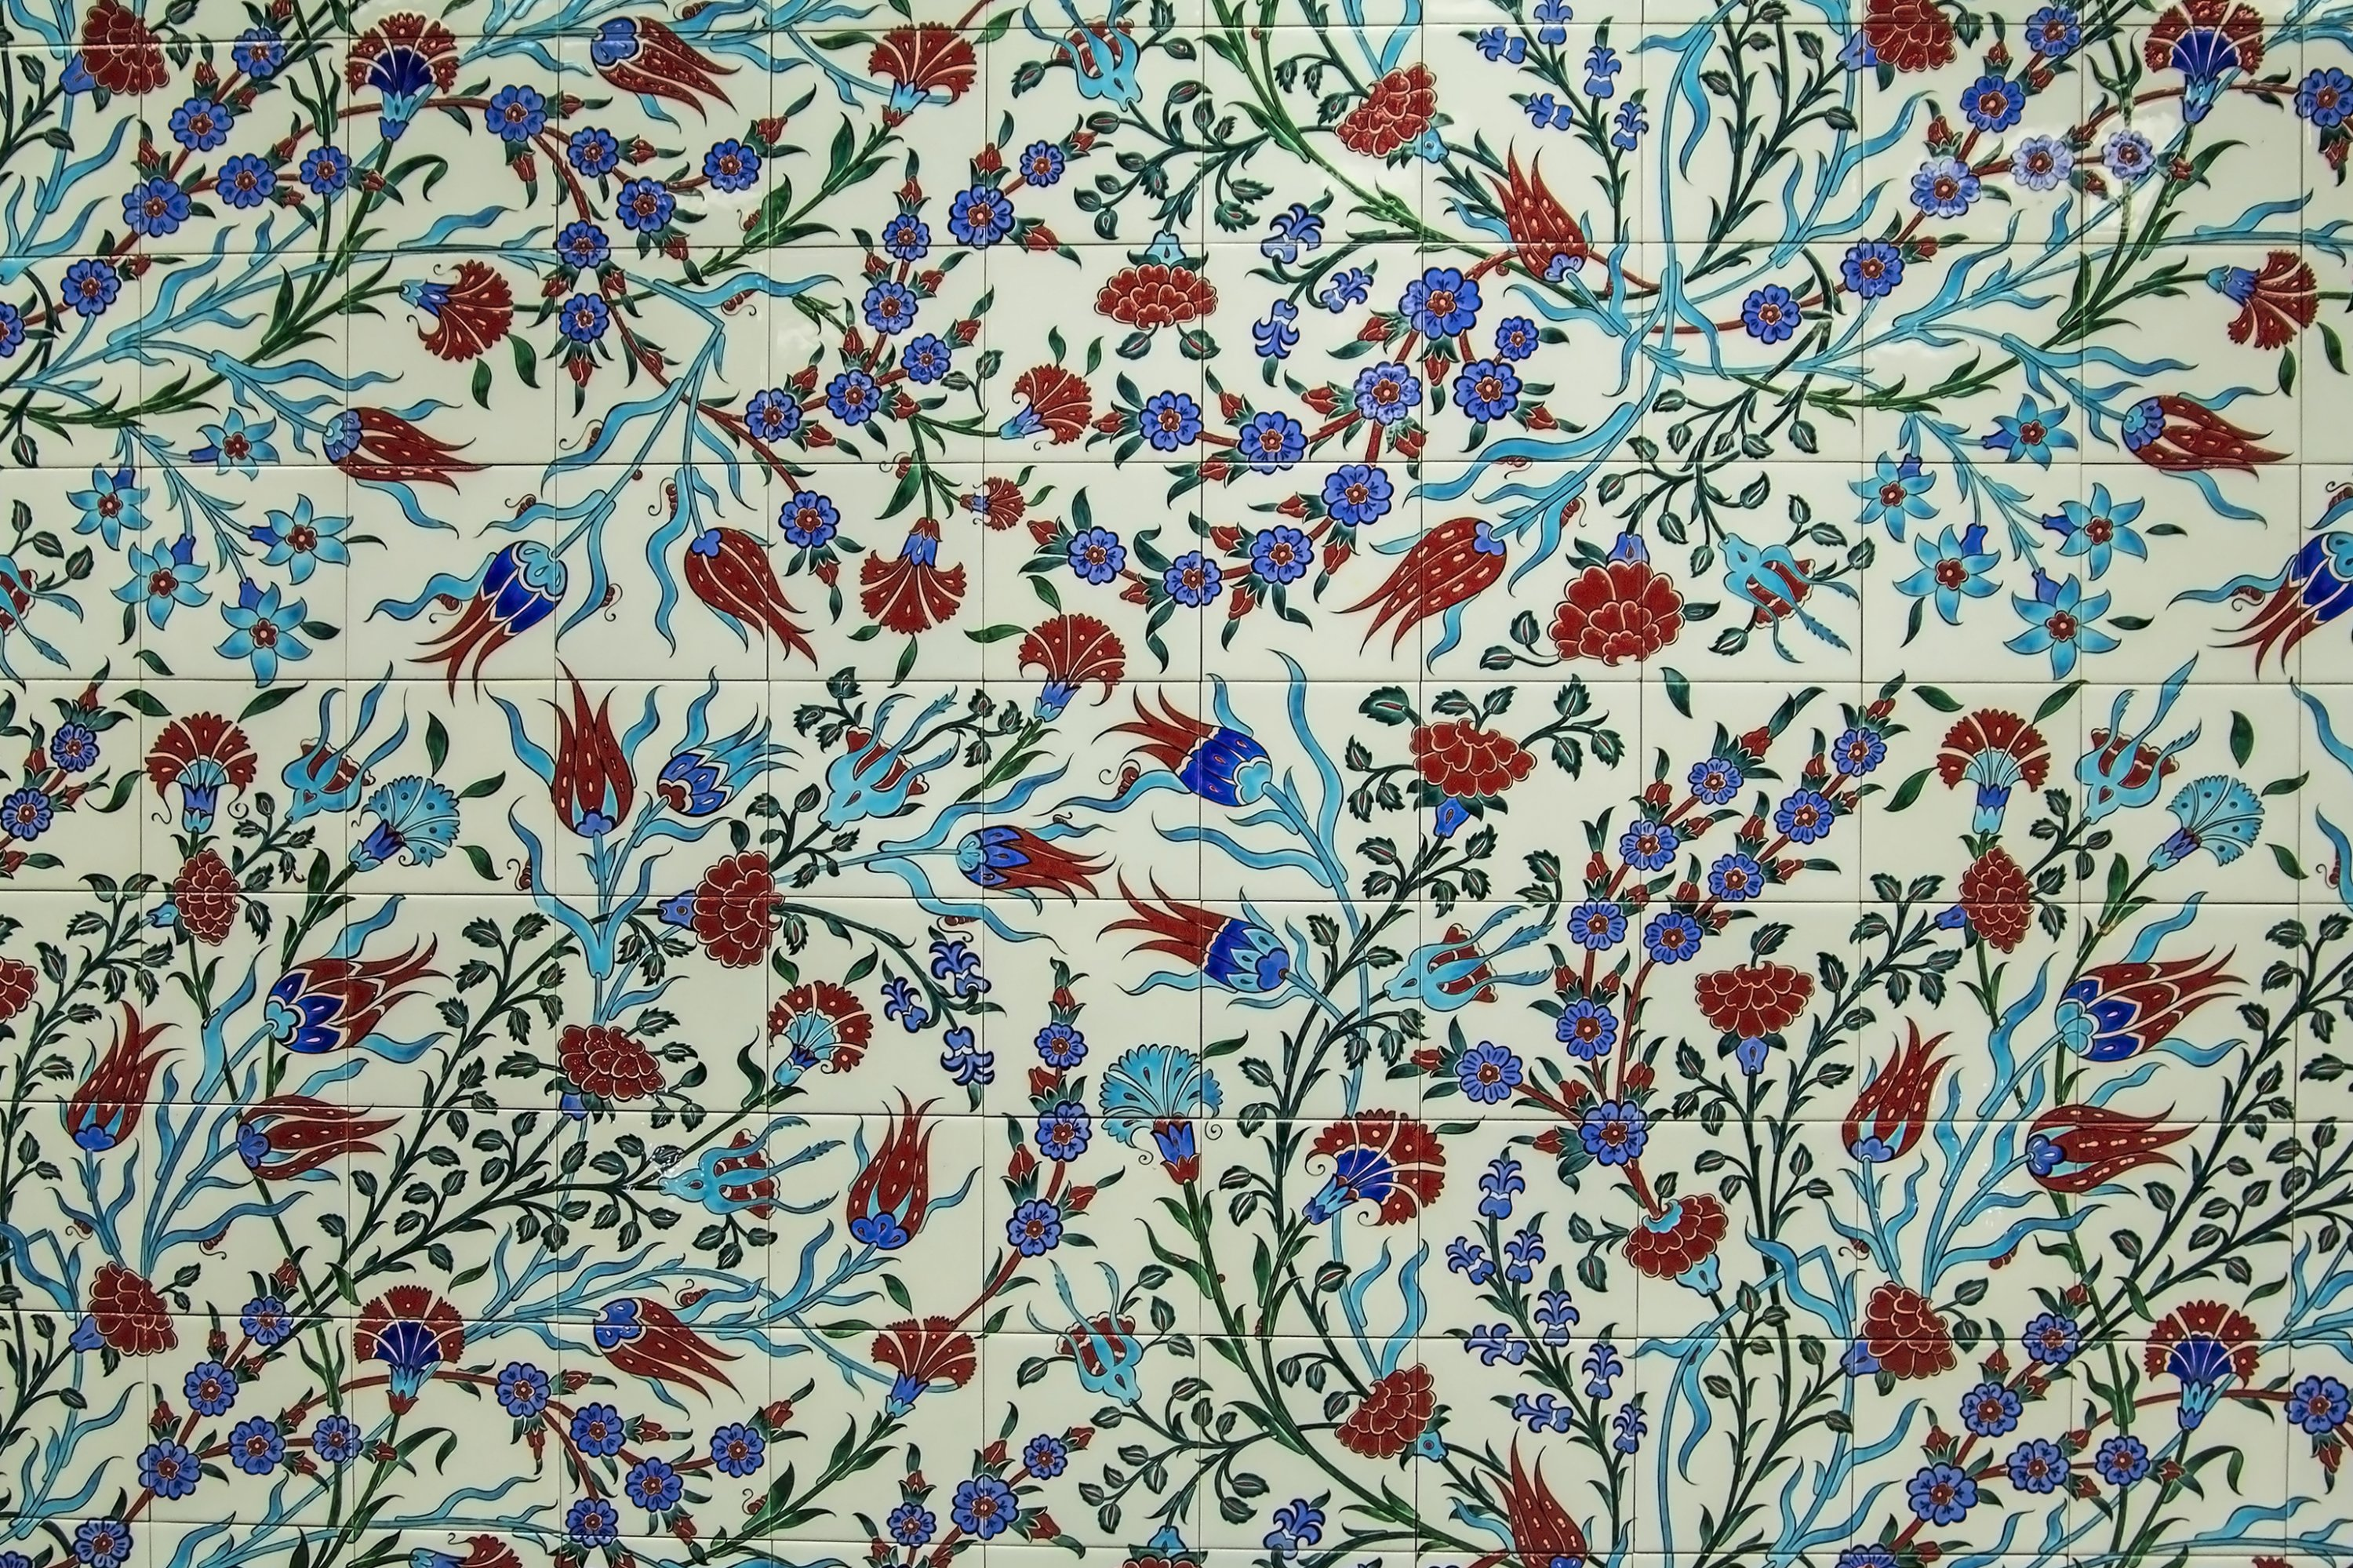 An Iznik tile decorated with rose, tulip and carnation motifs. (Shutterstock Photo)